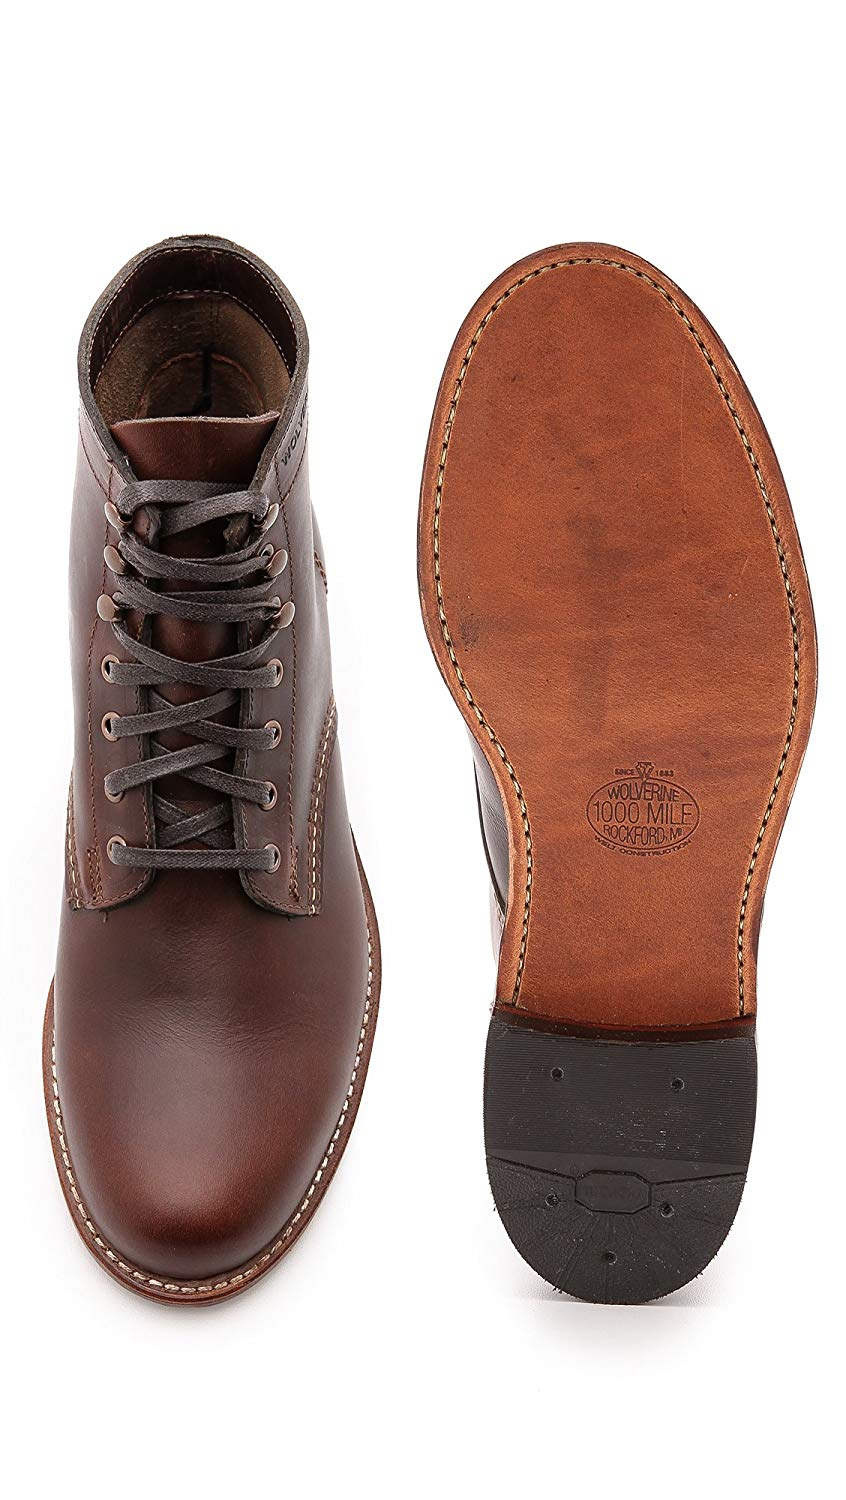 Wolverine-1000-Mile-Men-039-s-Leather-Boots-Cordovan-8-Black-Brown-Rust thumbnail 5